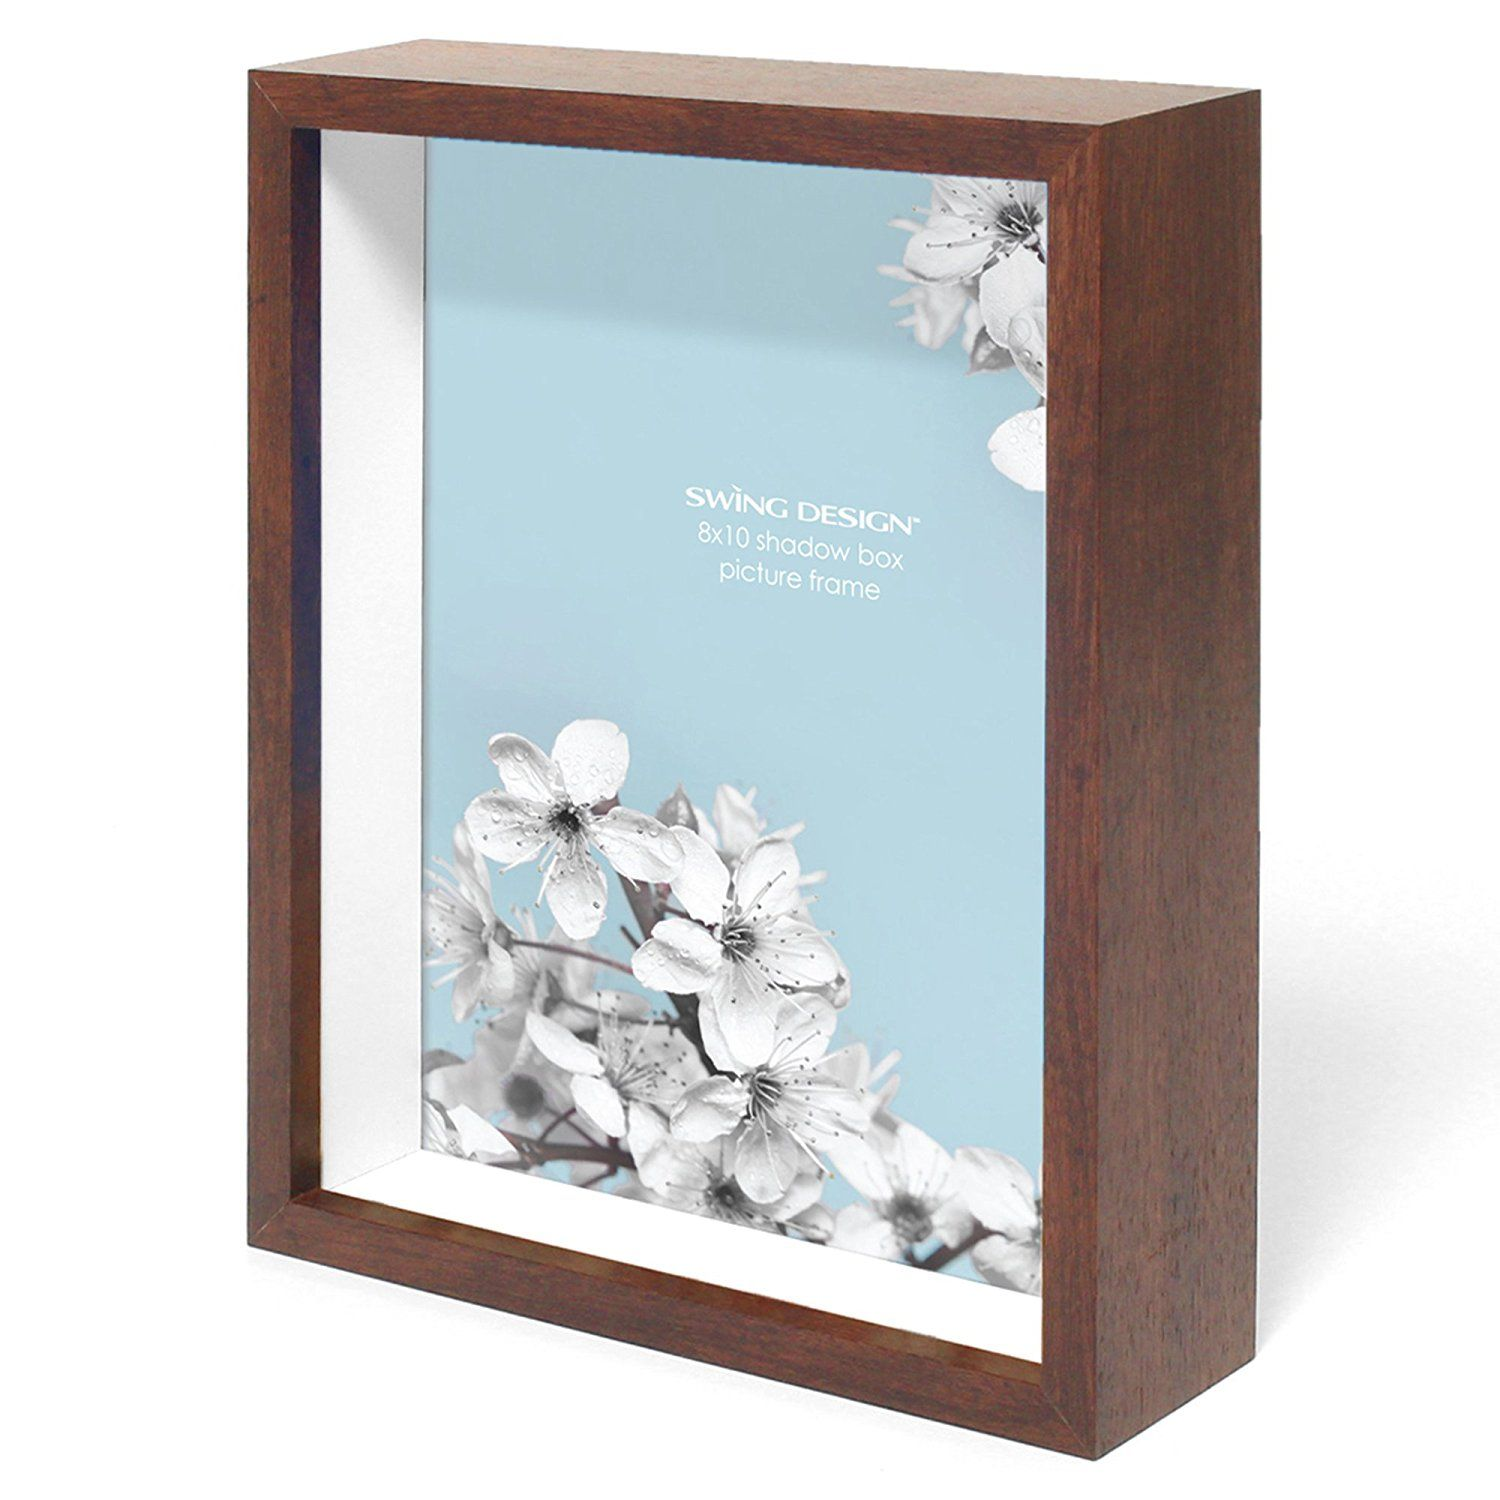 Swing Design Chroma Shadow Box Frame 8 By 10 Inch Walnut Visit The Image Link More Details This Is Shadow Box Picture Frames Box Frames Shadow Box Frames